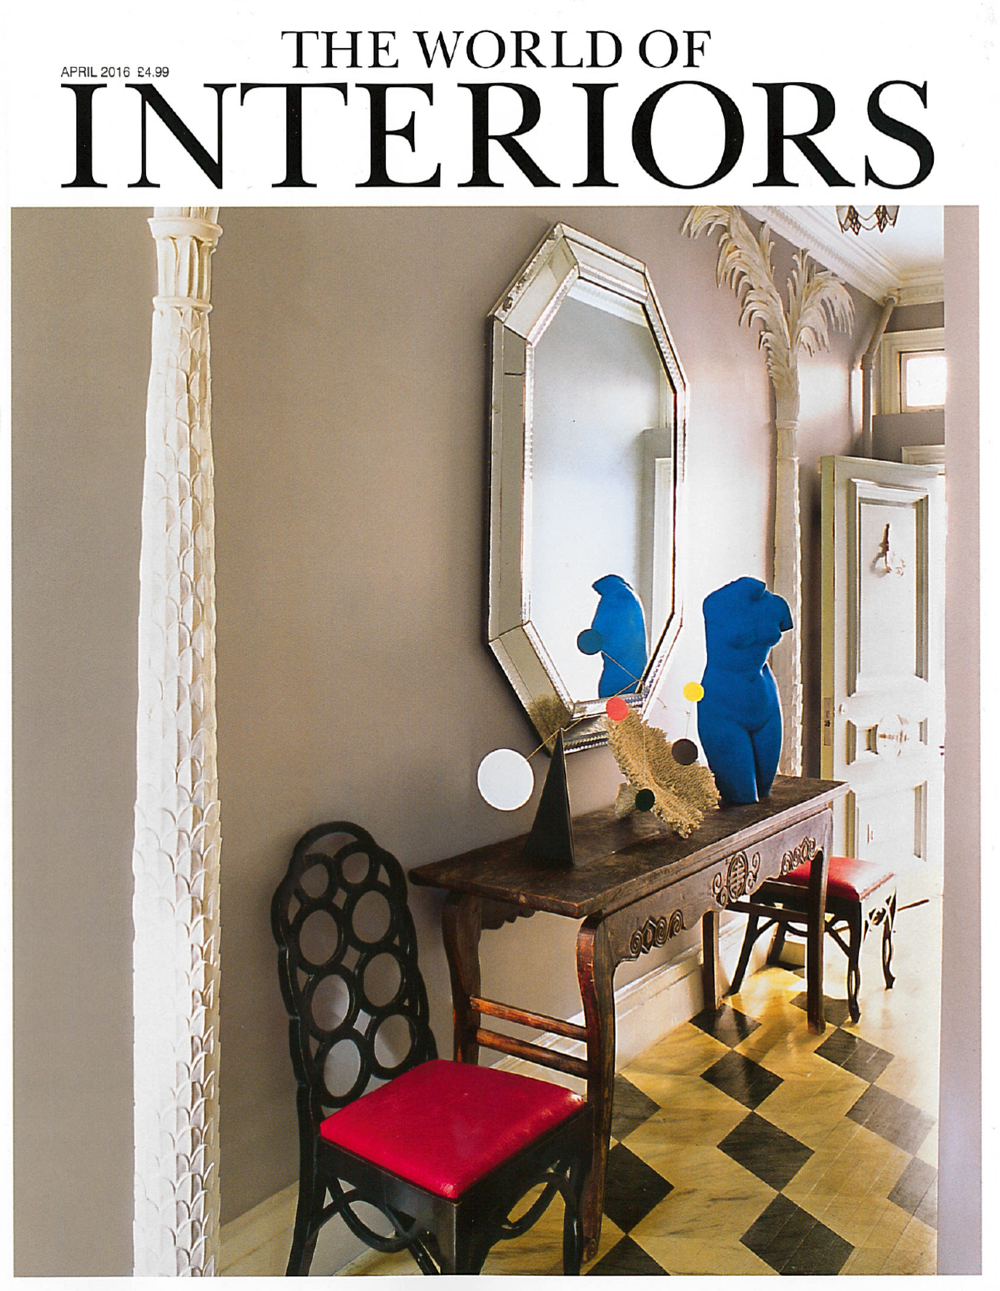 World of Interiors April 16